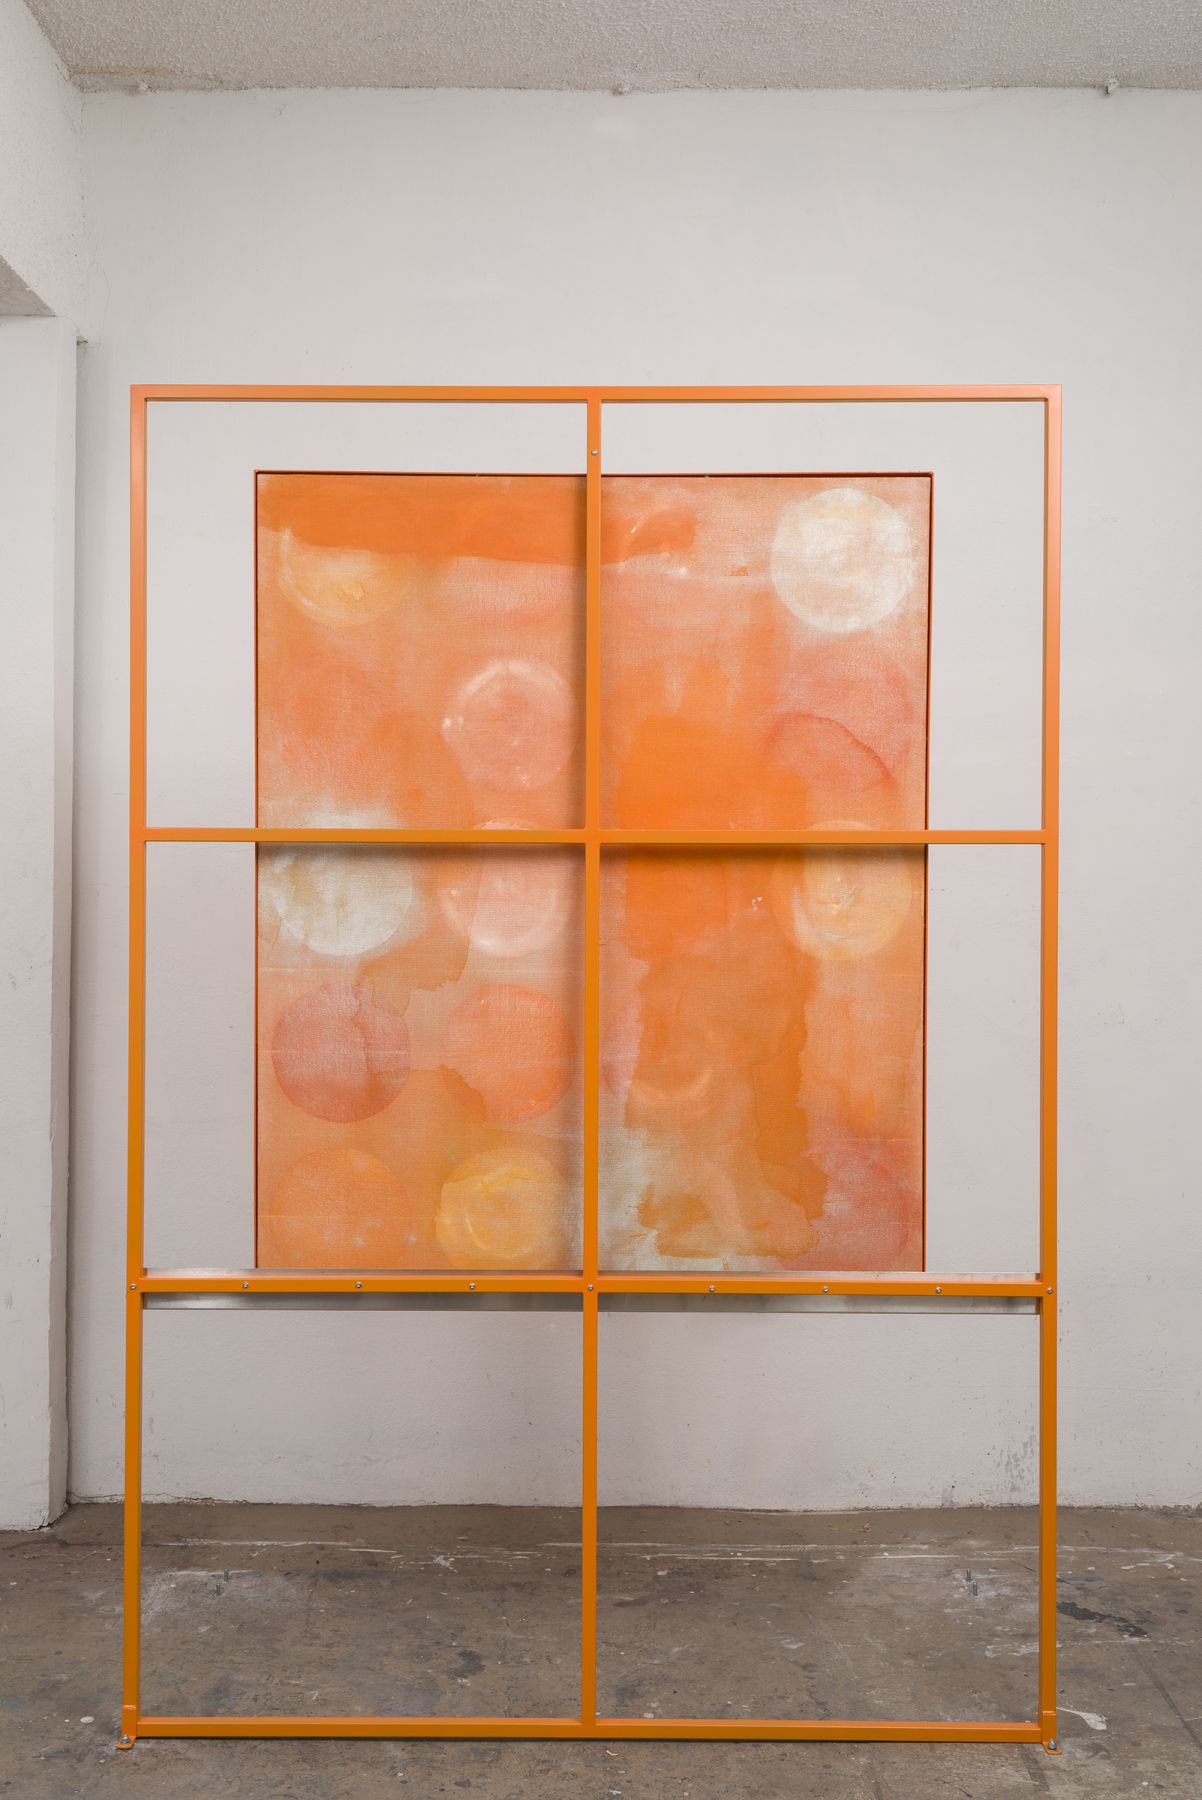 an orange grid artwork that is two-sided by contemporary artist dashiell manley